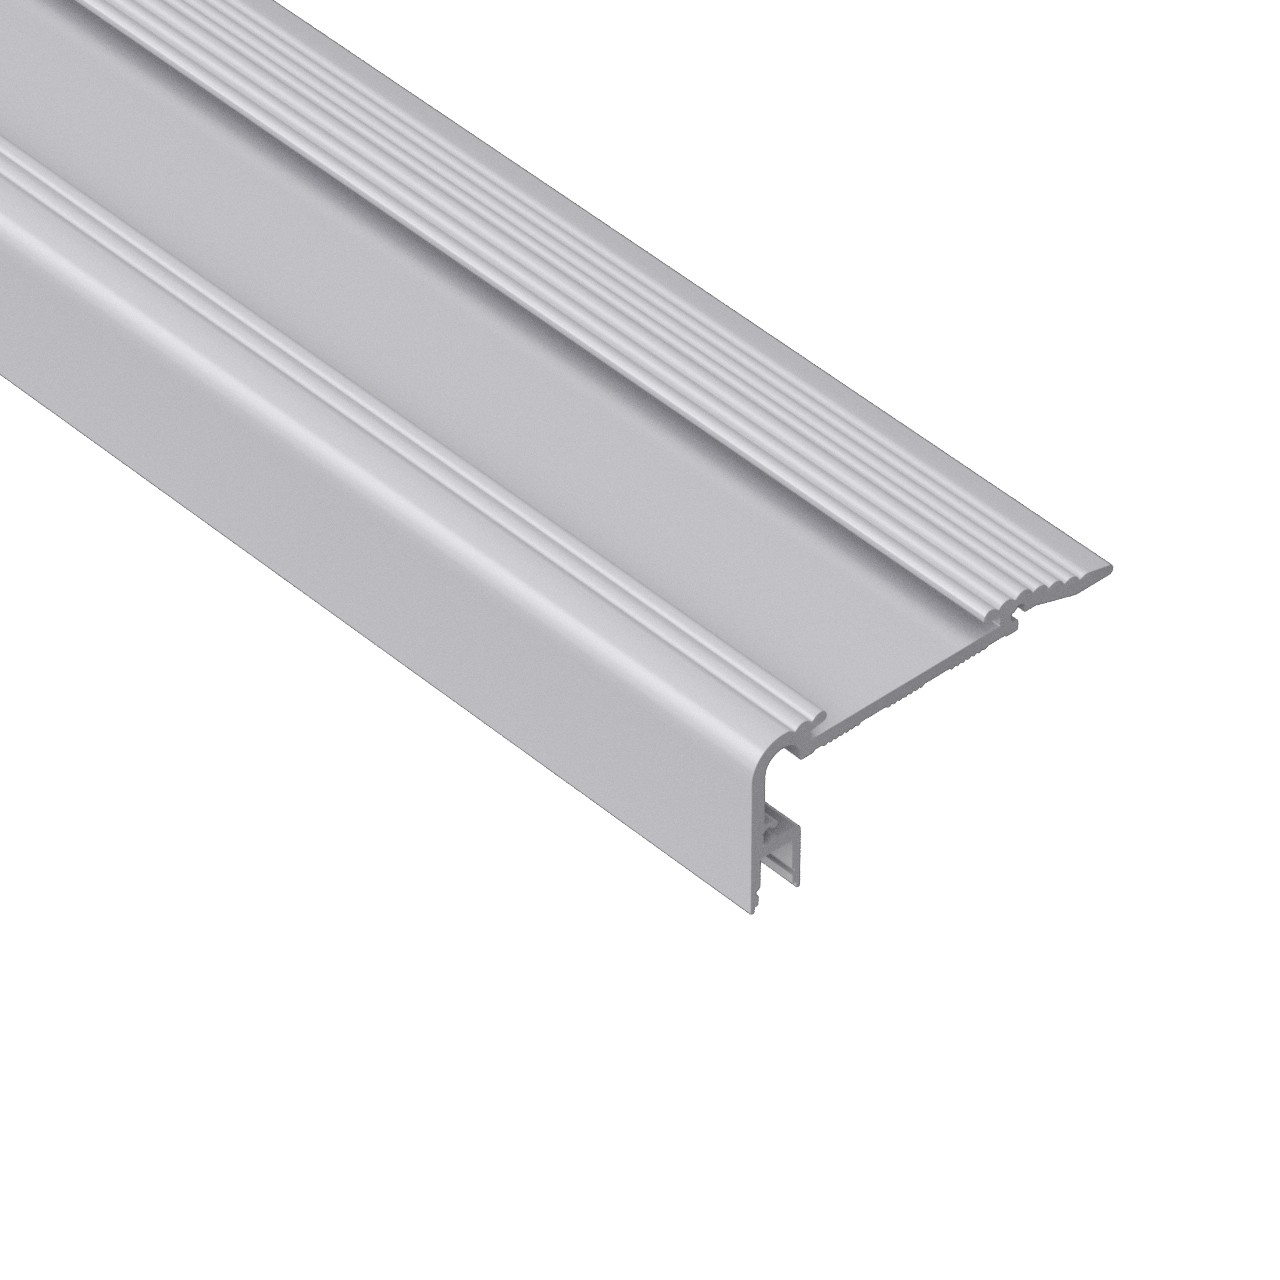 ST2 Stair led profile for down light 60x25.7mm